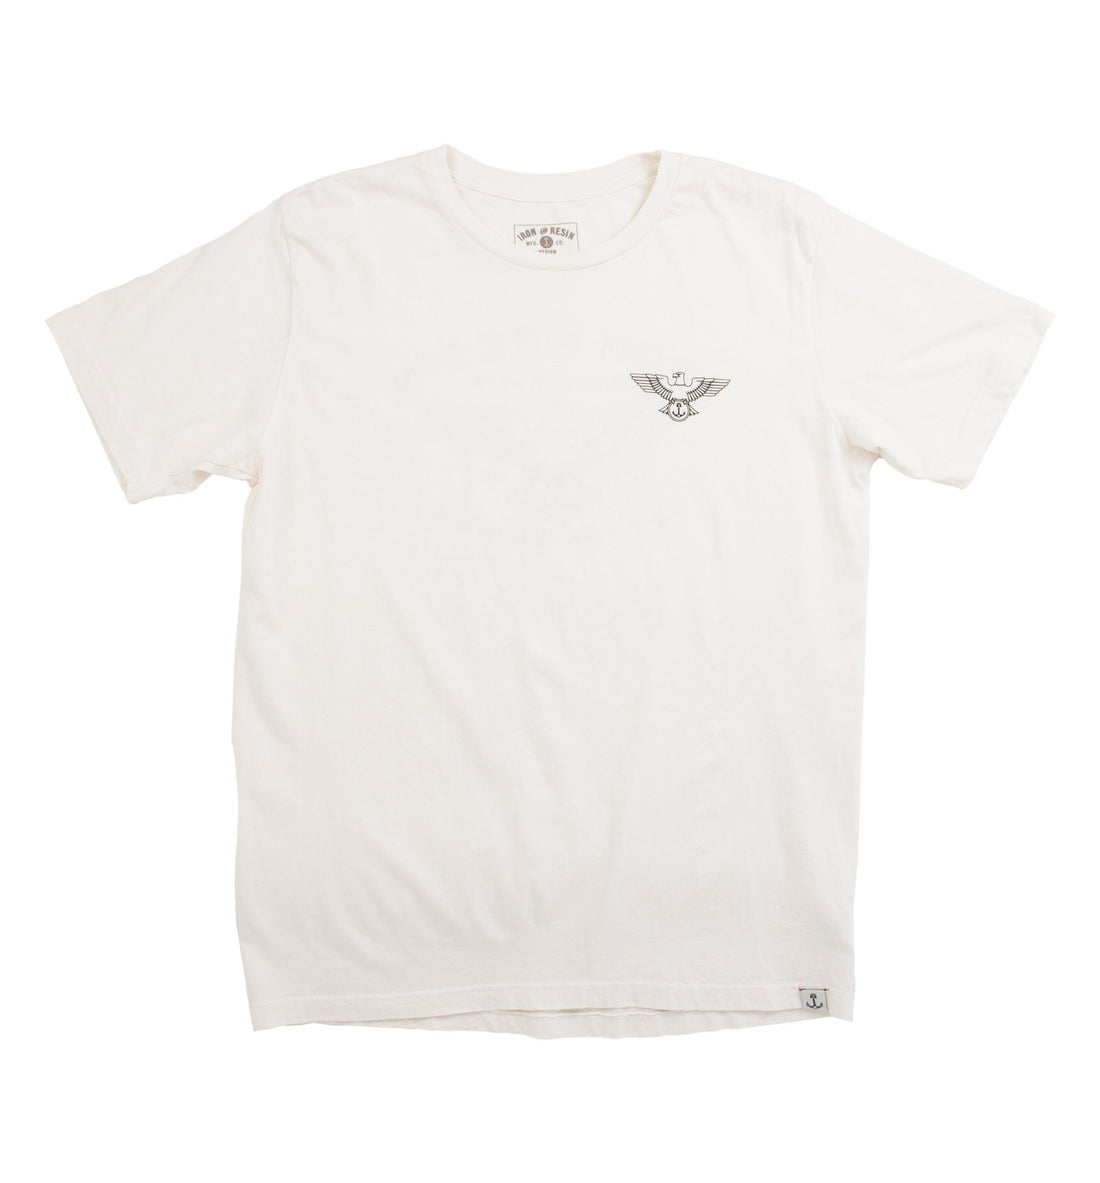 Adventure Eagle Tee - Tops - Iron and Resin